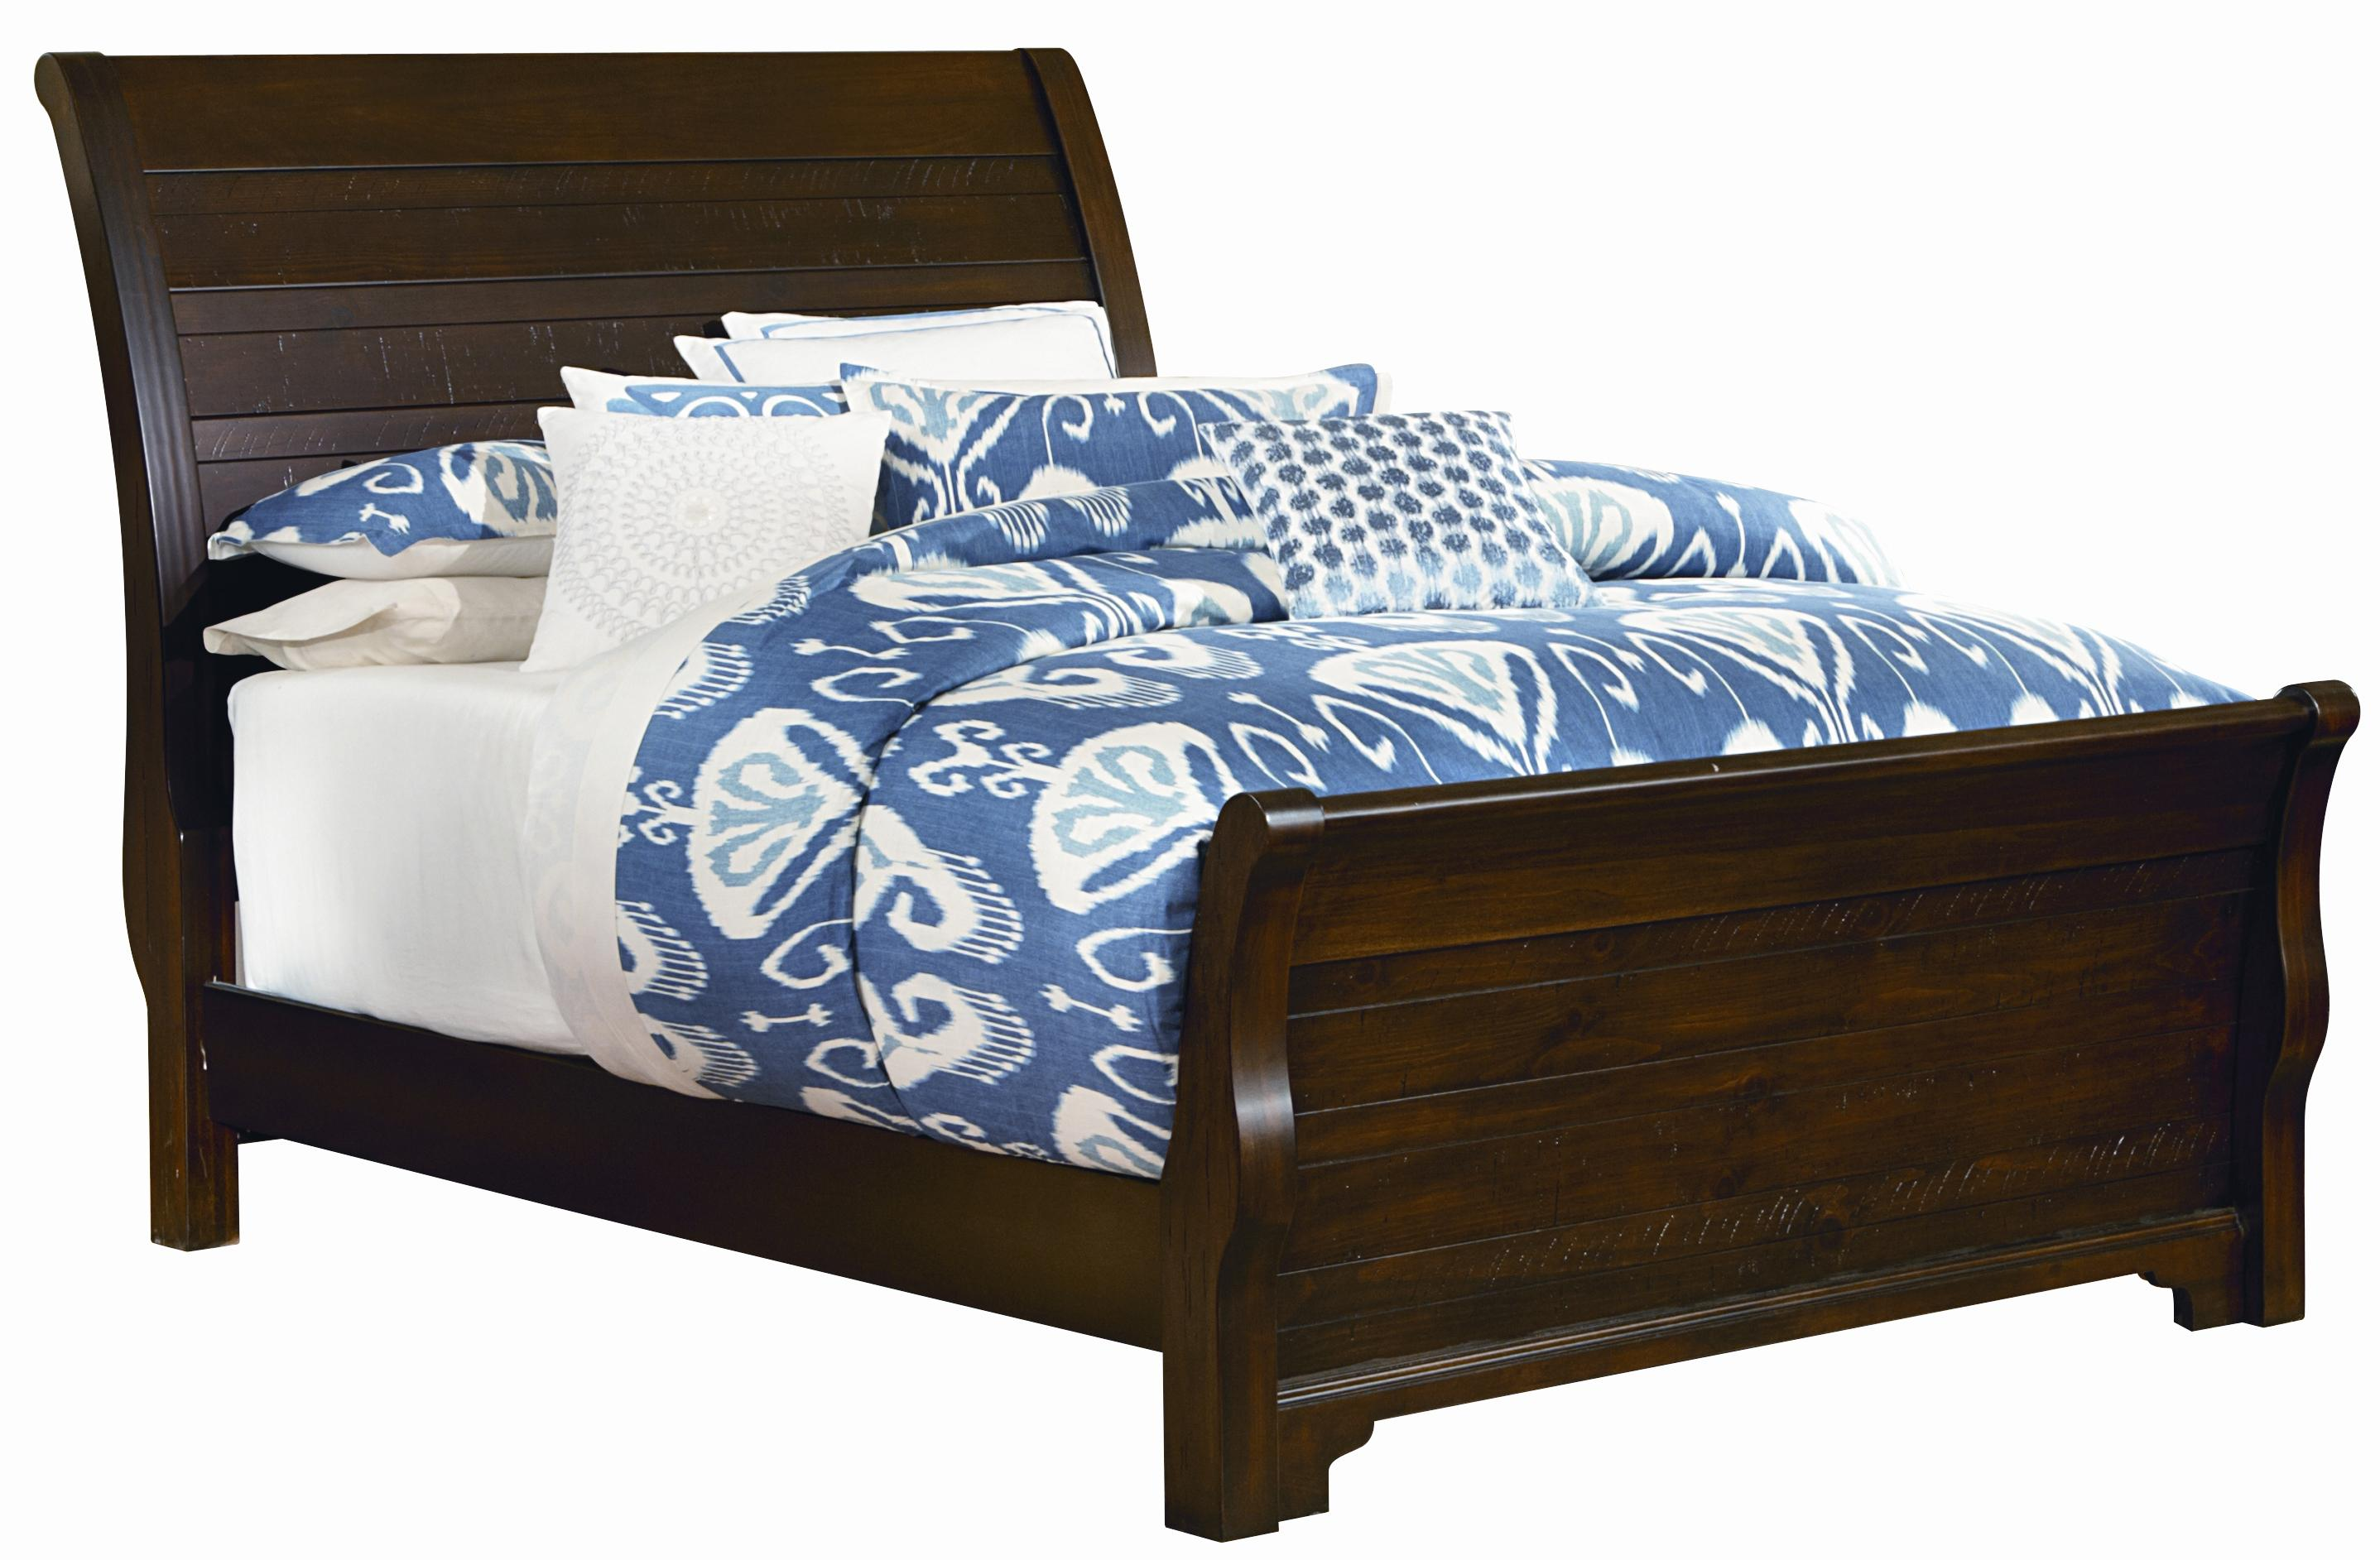 Hanover Distressed Queen Sleigh Bed W Footboard By Vaughan Bassett At Turk Furniture